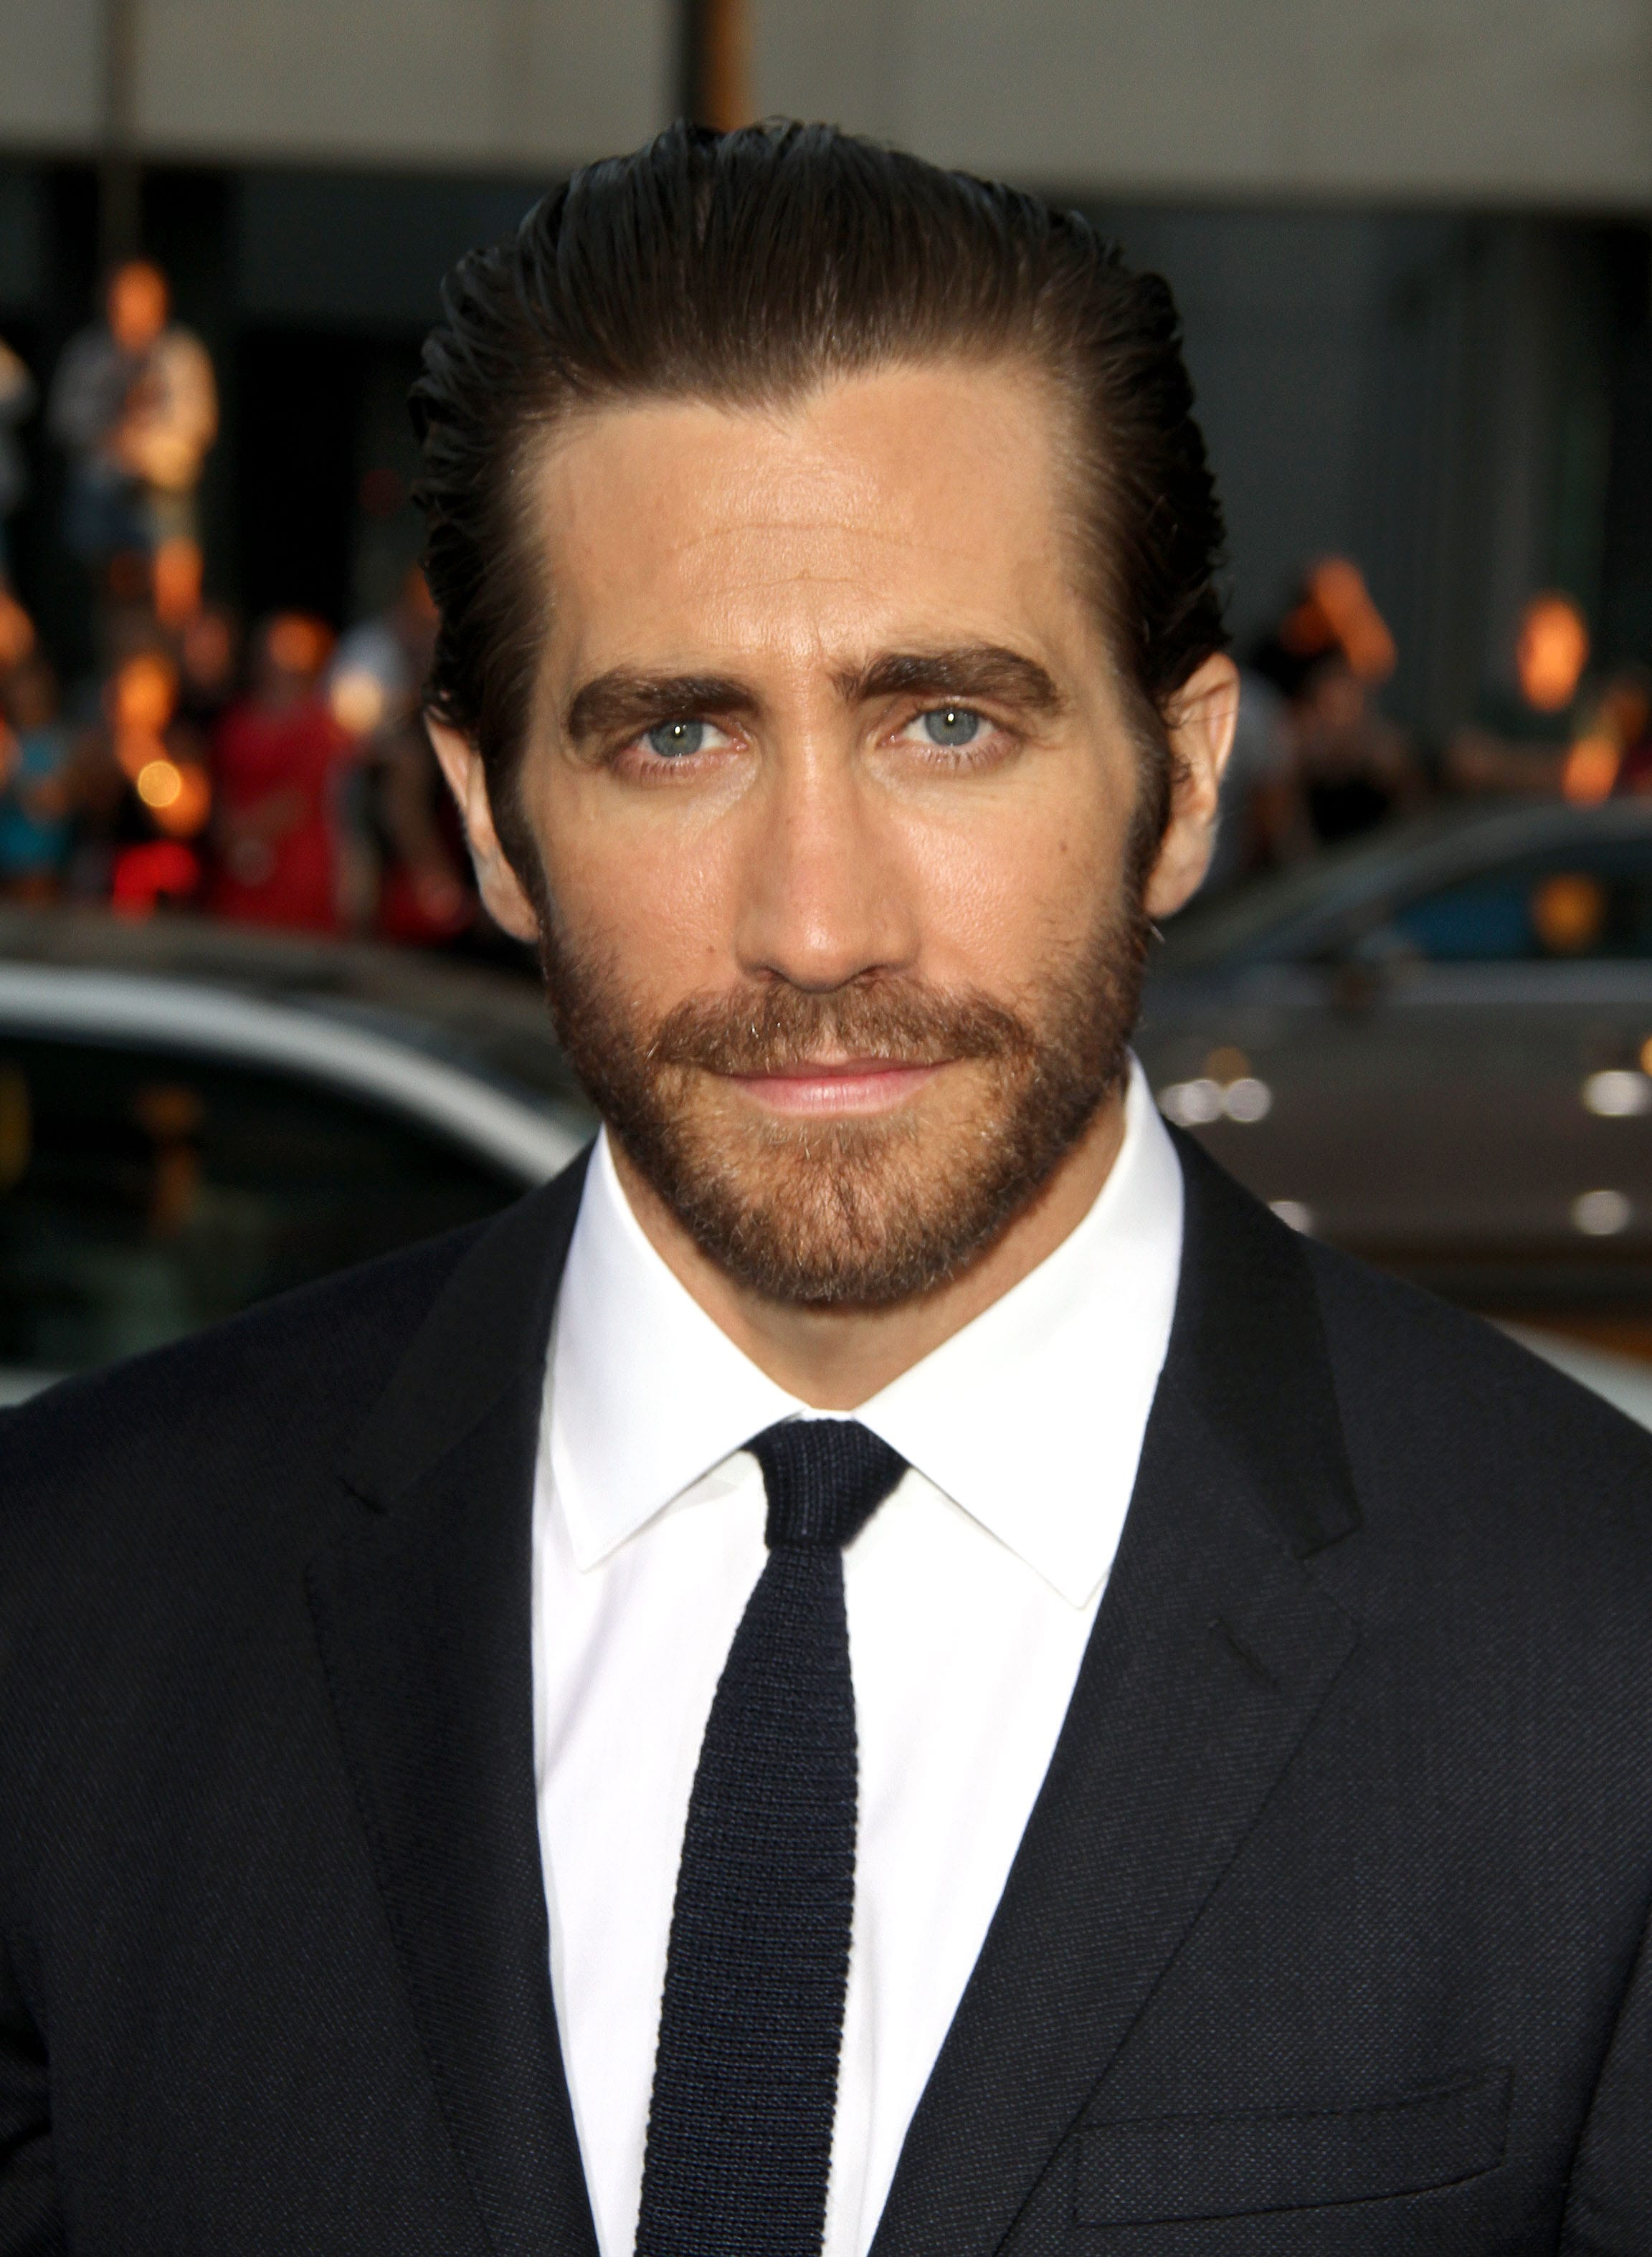 Jake Gyllenhaal Background